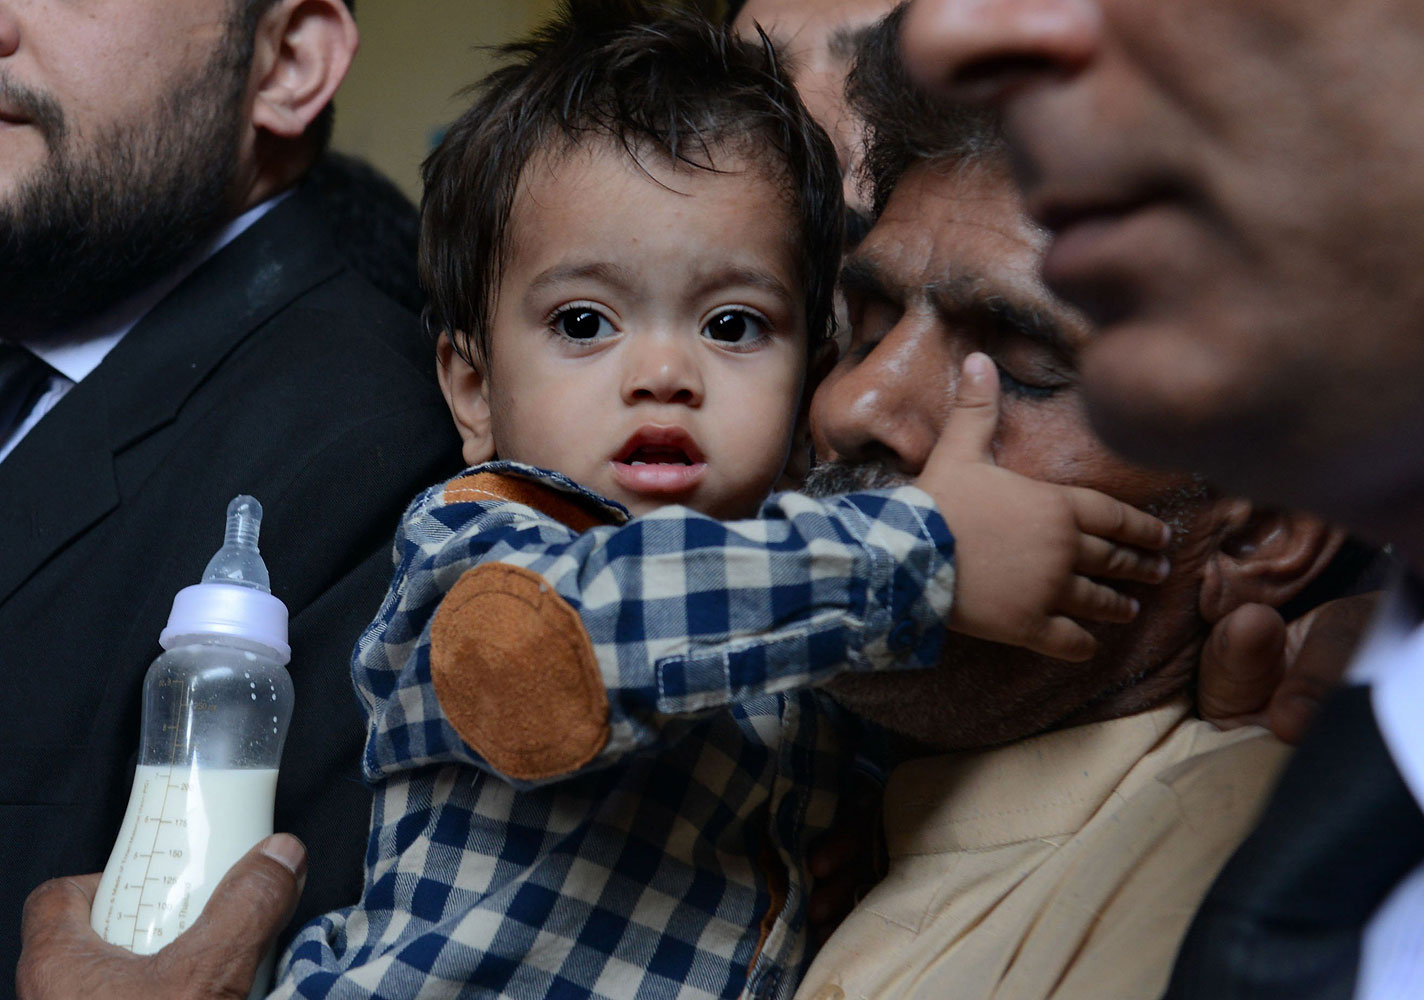 Nine month Pakistan toddler Mohammad Musa is held by his grandfather Muhammad Yasin for a court hearing in Lahore on April 12, 2014.